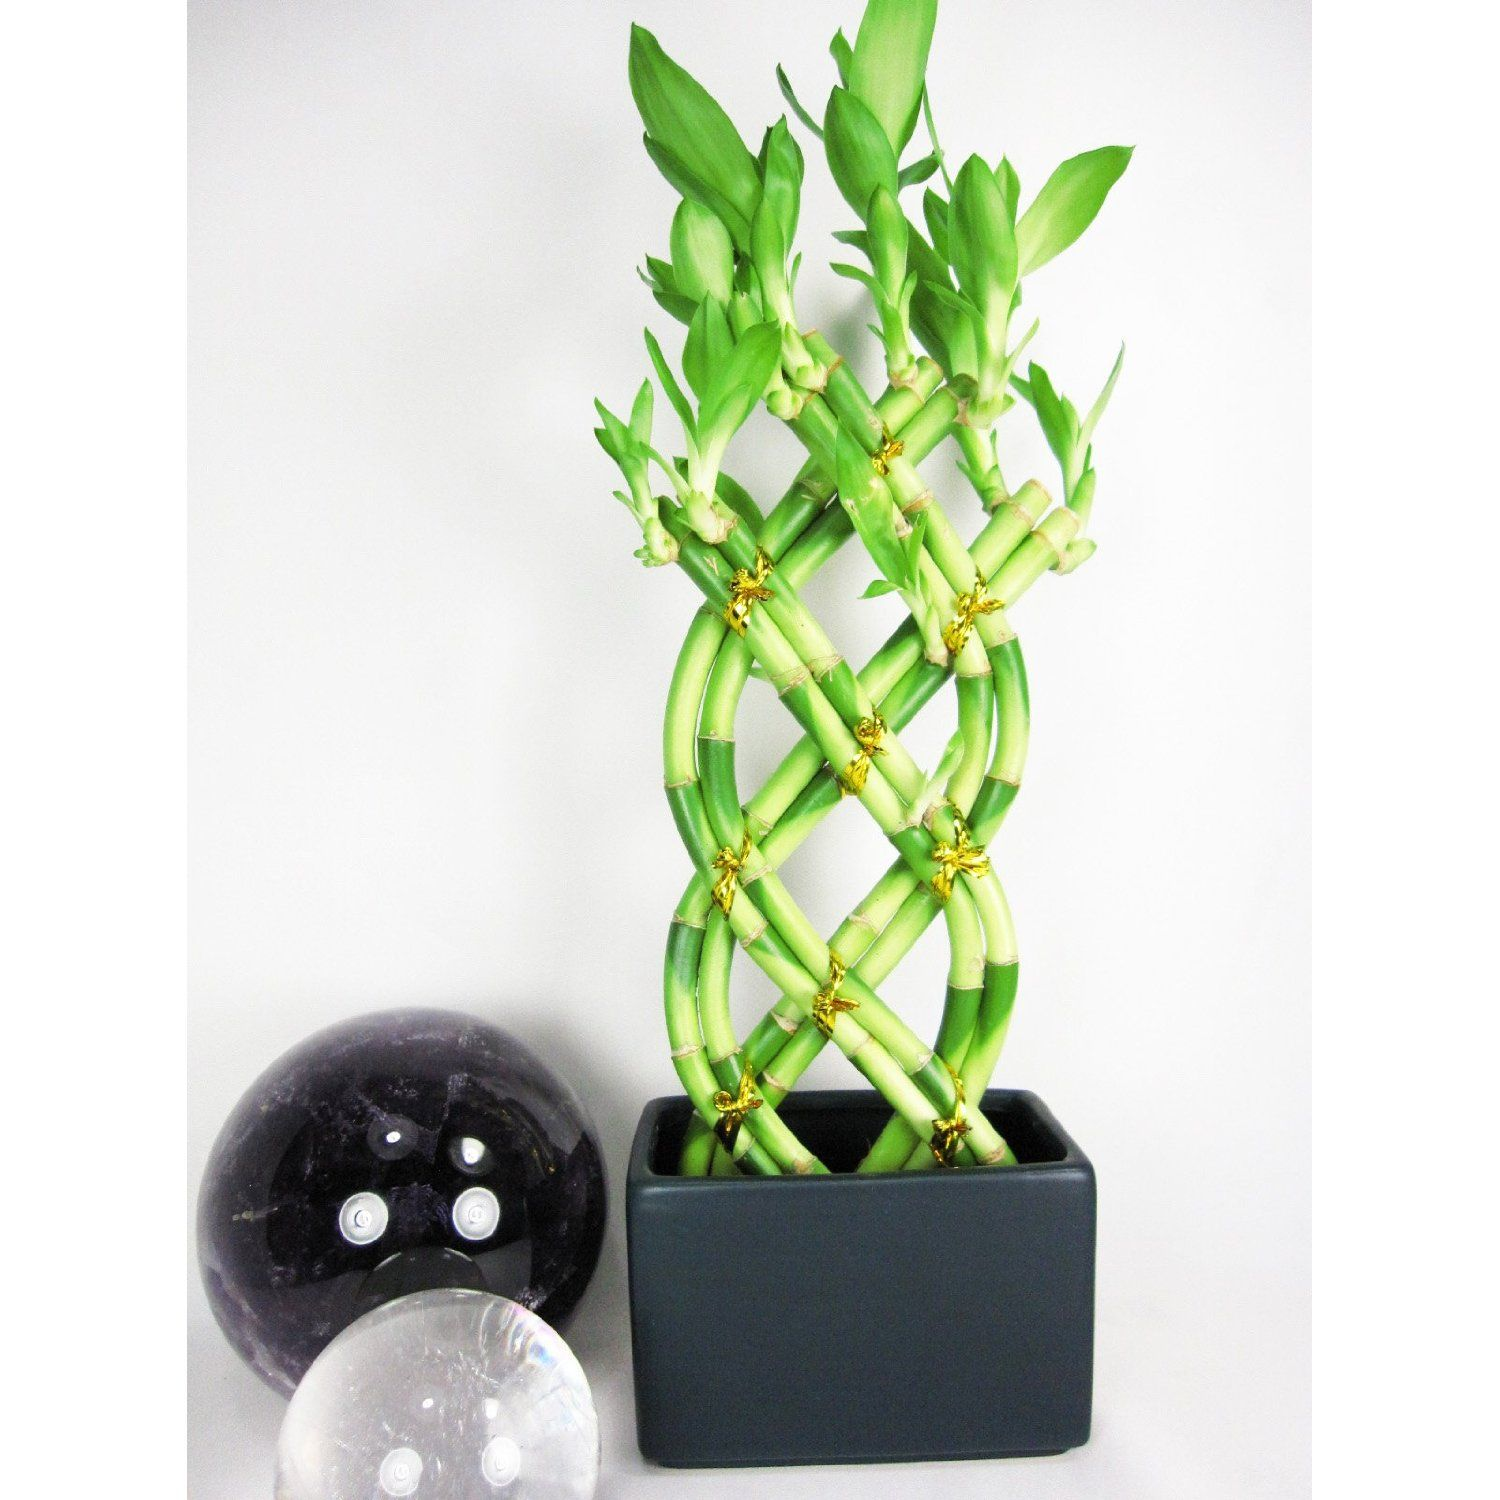 What do the colors of ribbon symbolize on lucky bamboo ehow - Braided Style Lucky Bamboo Plant